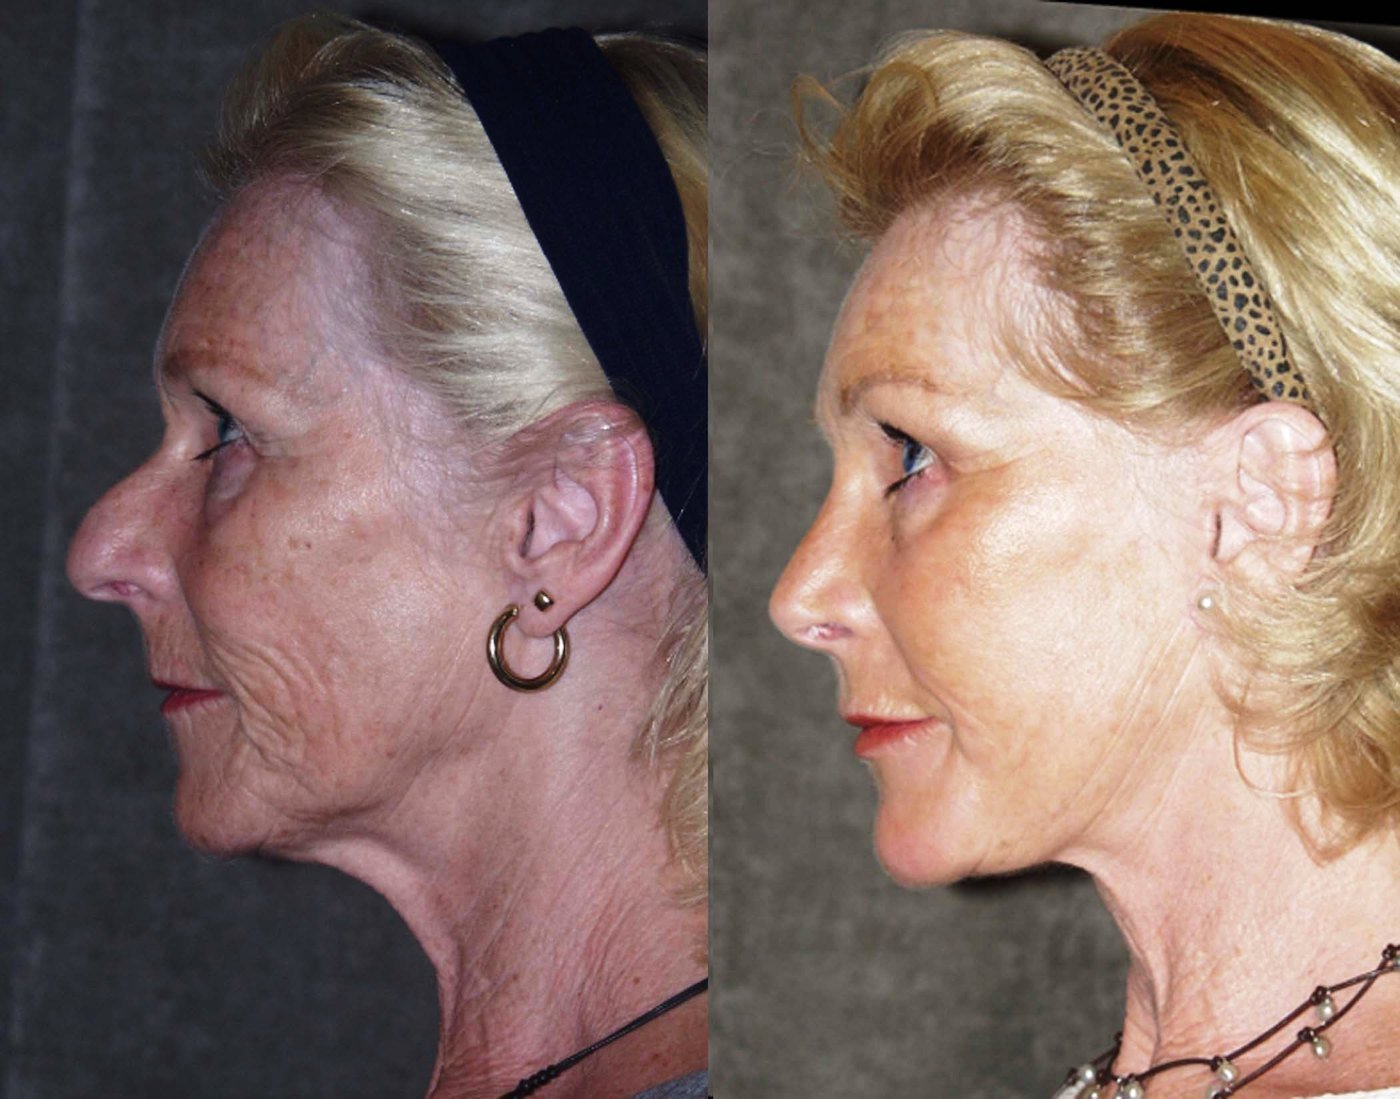 Facelift endoscopic browlift chin implant rhinoplasty side view